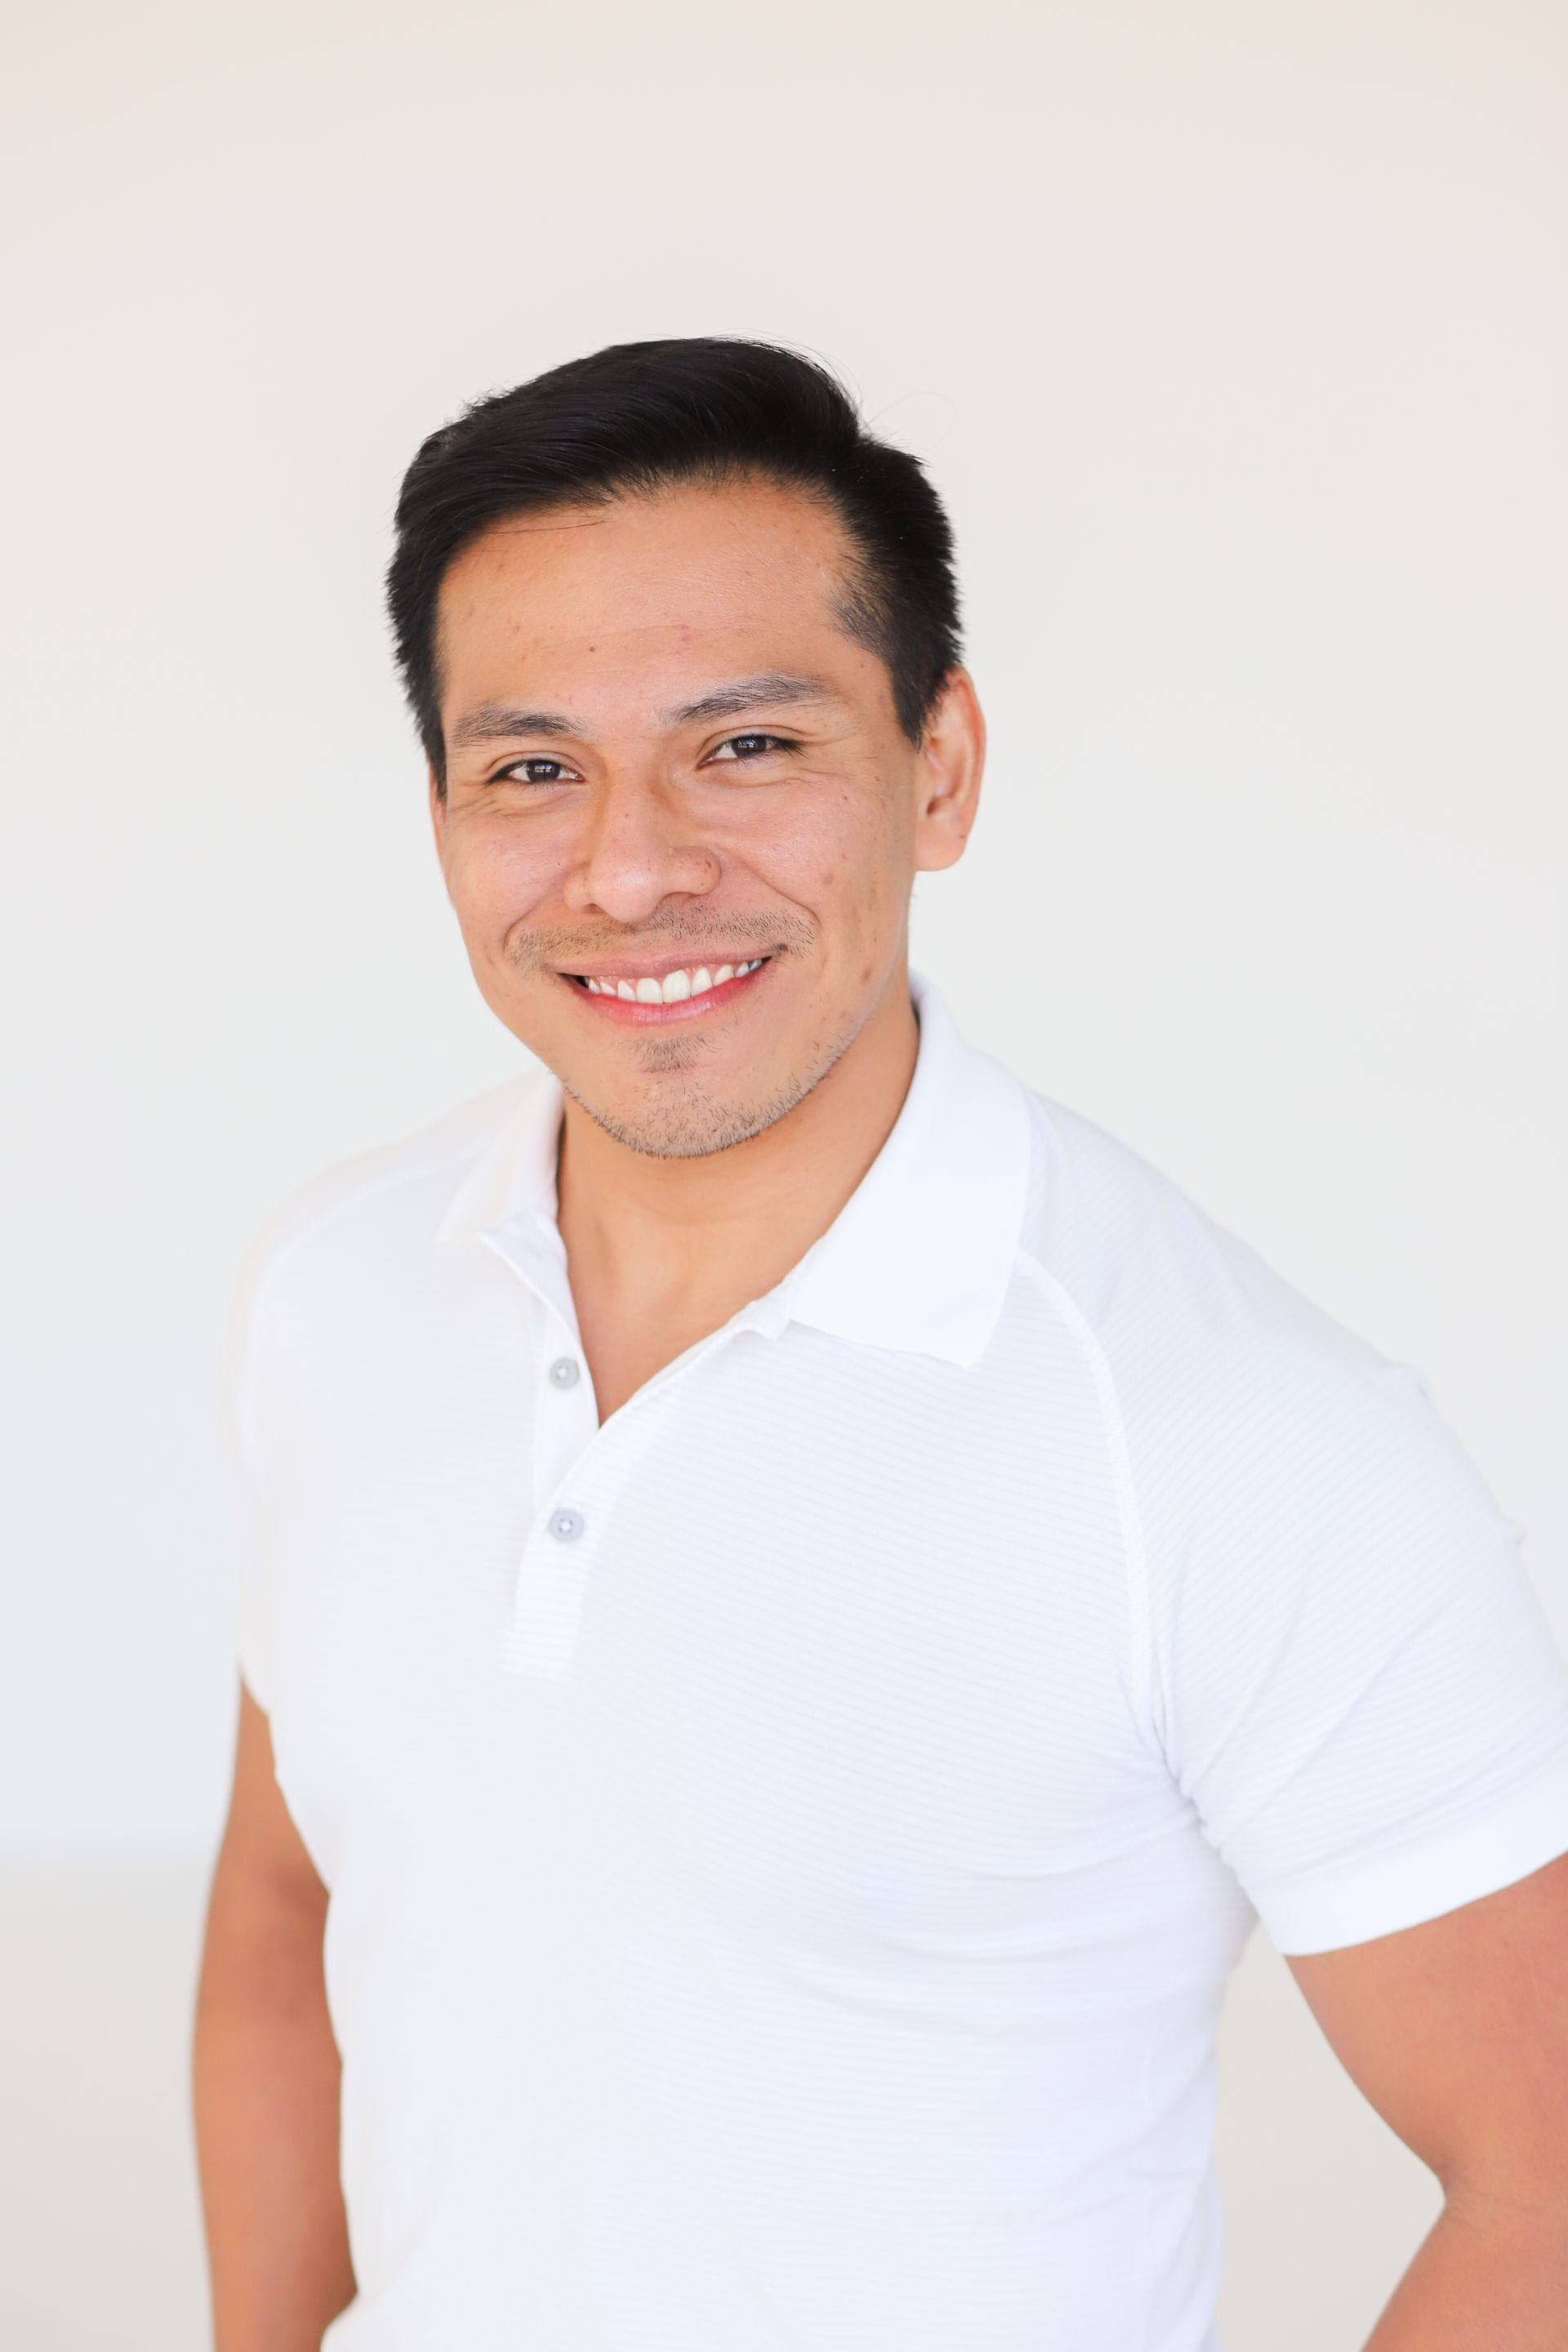 Carlos Lopez is an experienced architecture and designer working with Millennial Design as their project lead architect and custom home builder in DFW with a true passion for creativity throughout the home building process.